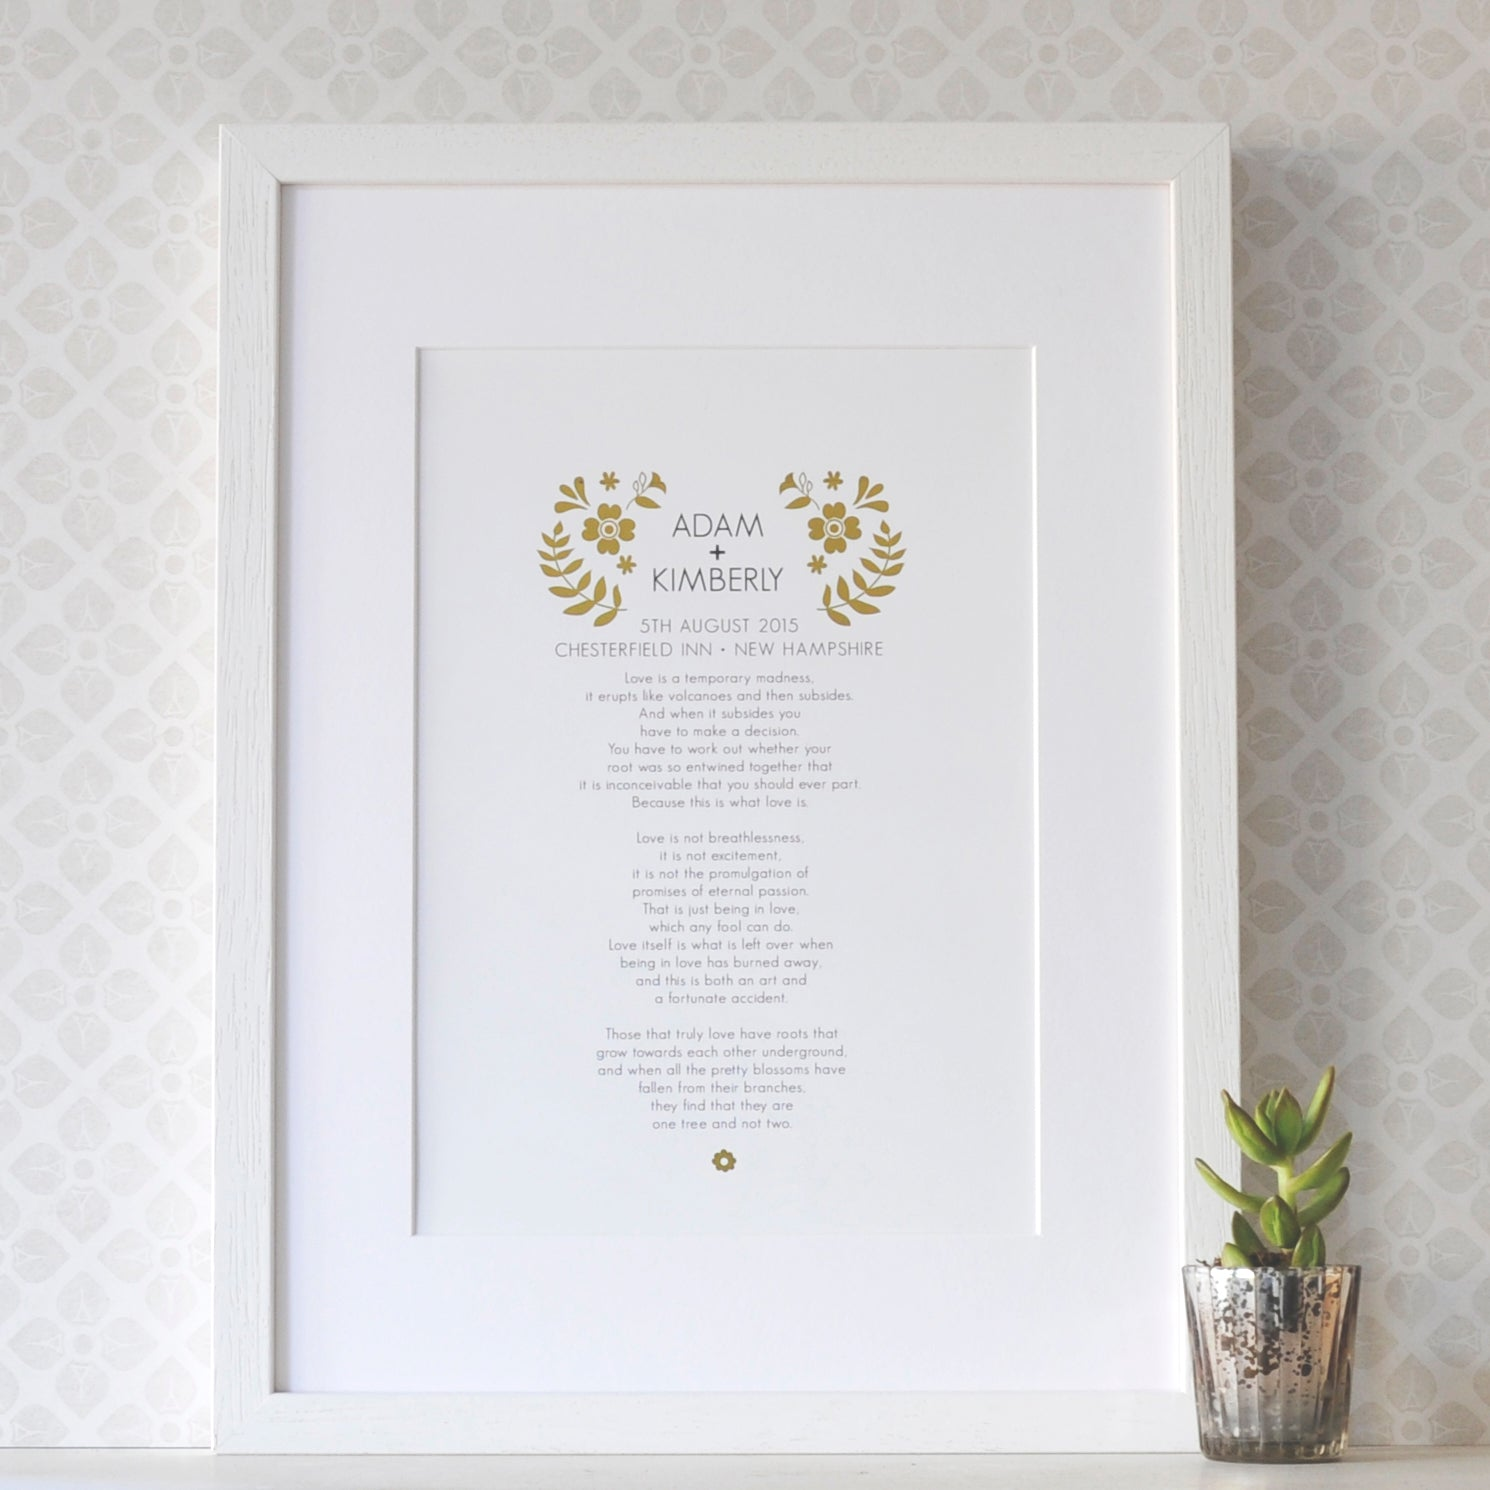 Personalised Wedding Vow Print with Gold - Ant Design Gifts